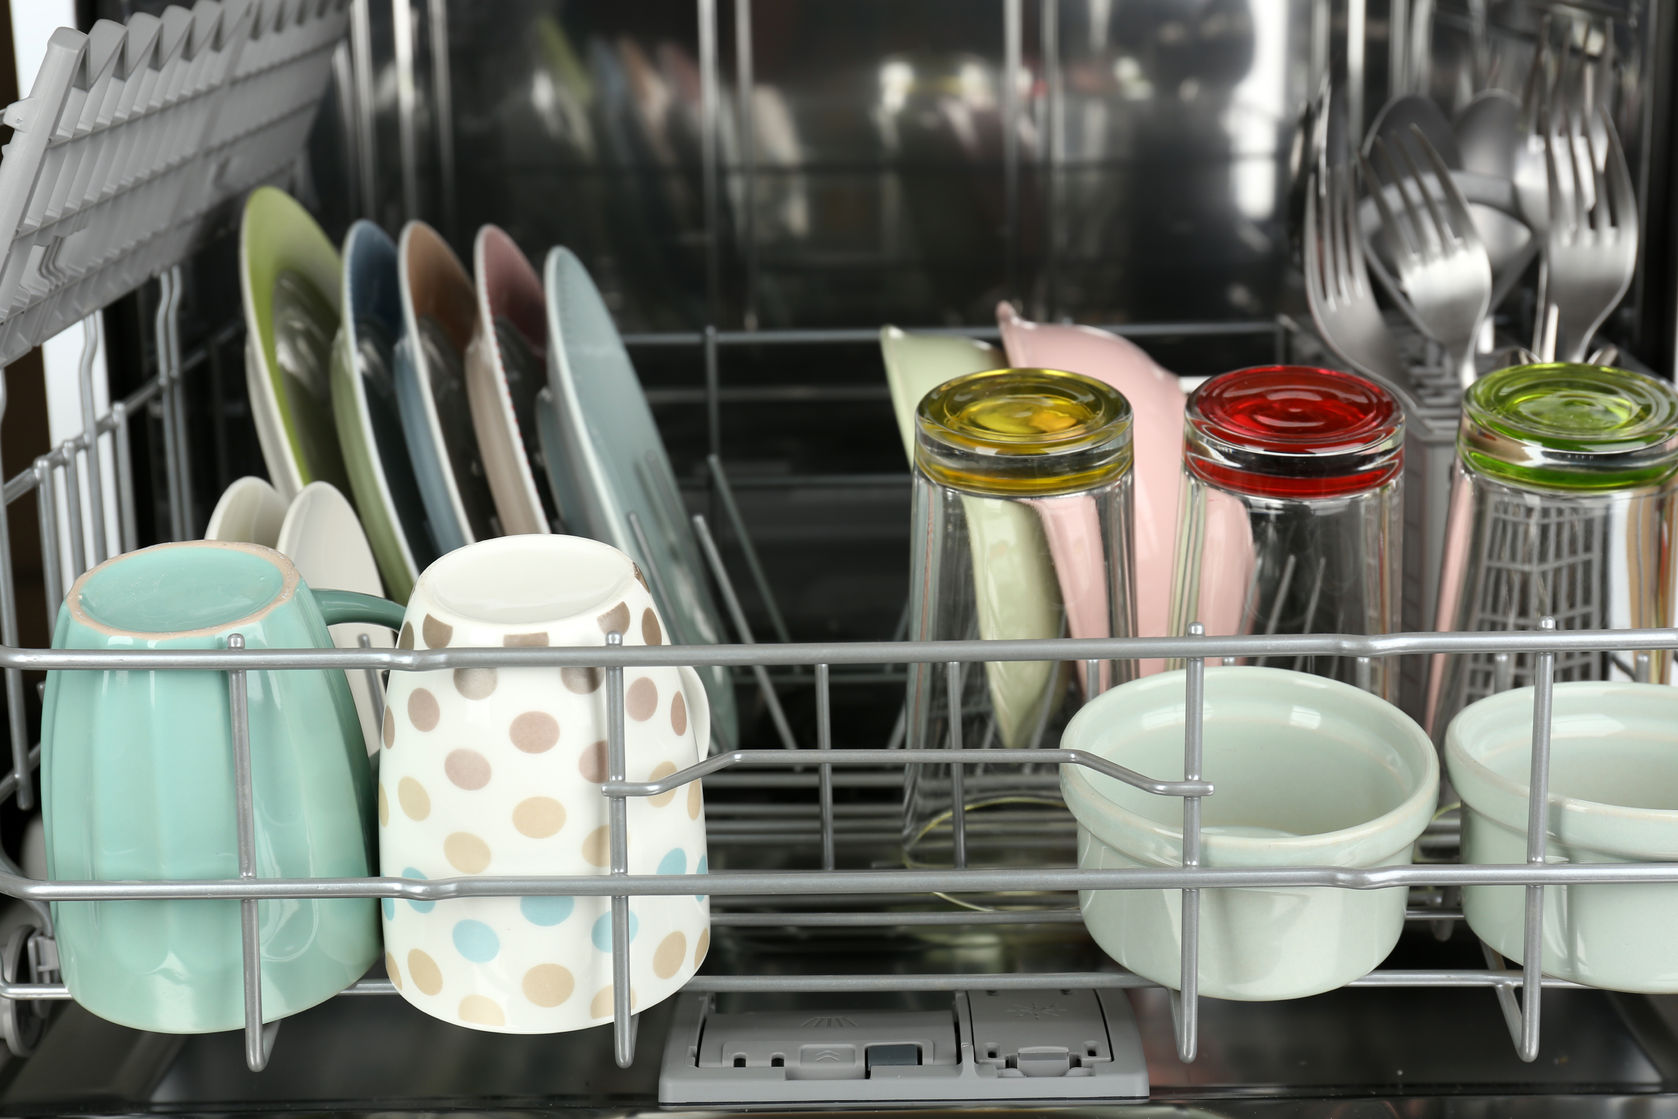 Dishwasher Repair in Madison, Wi